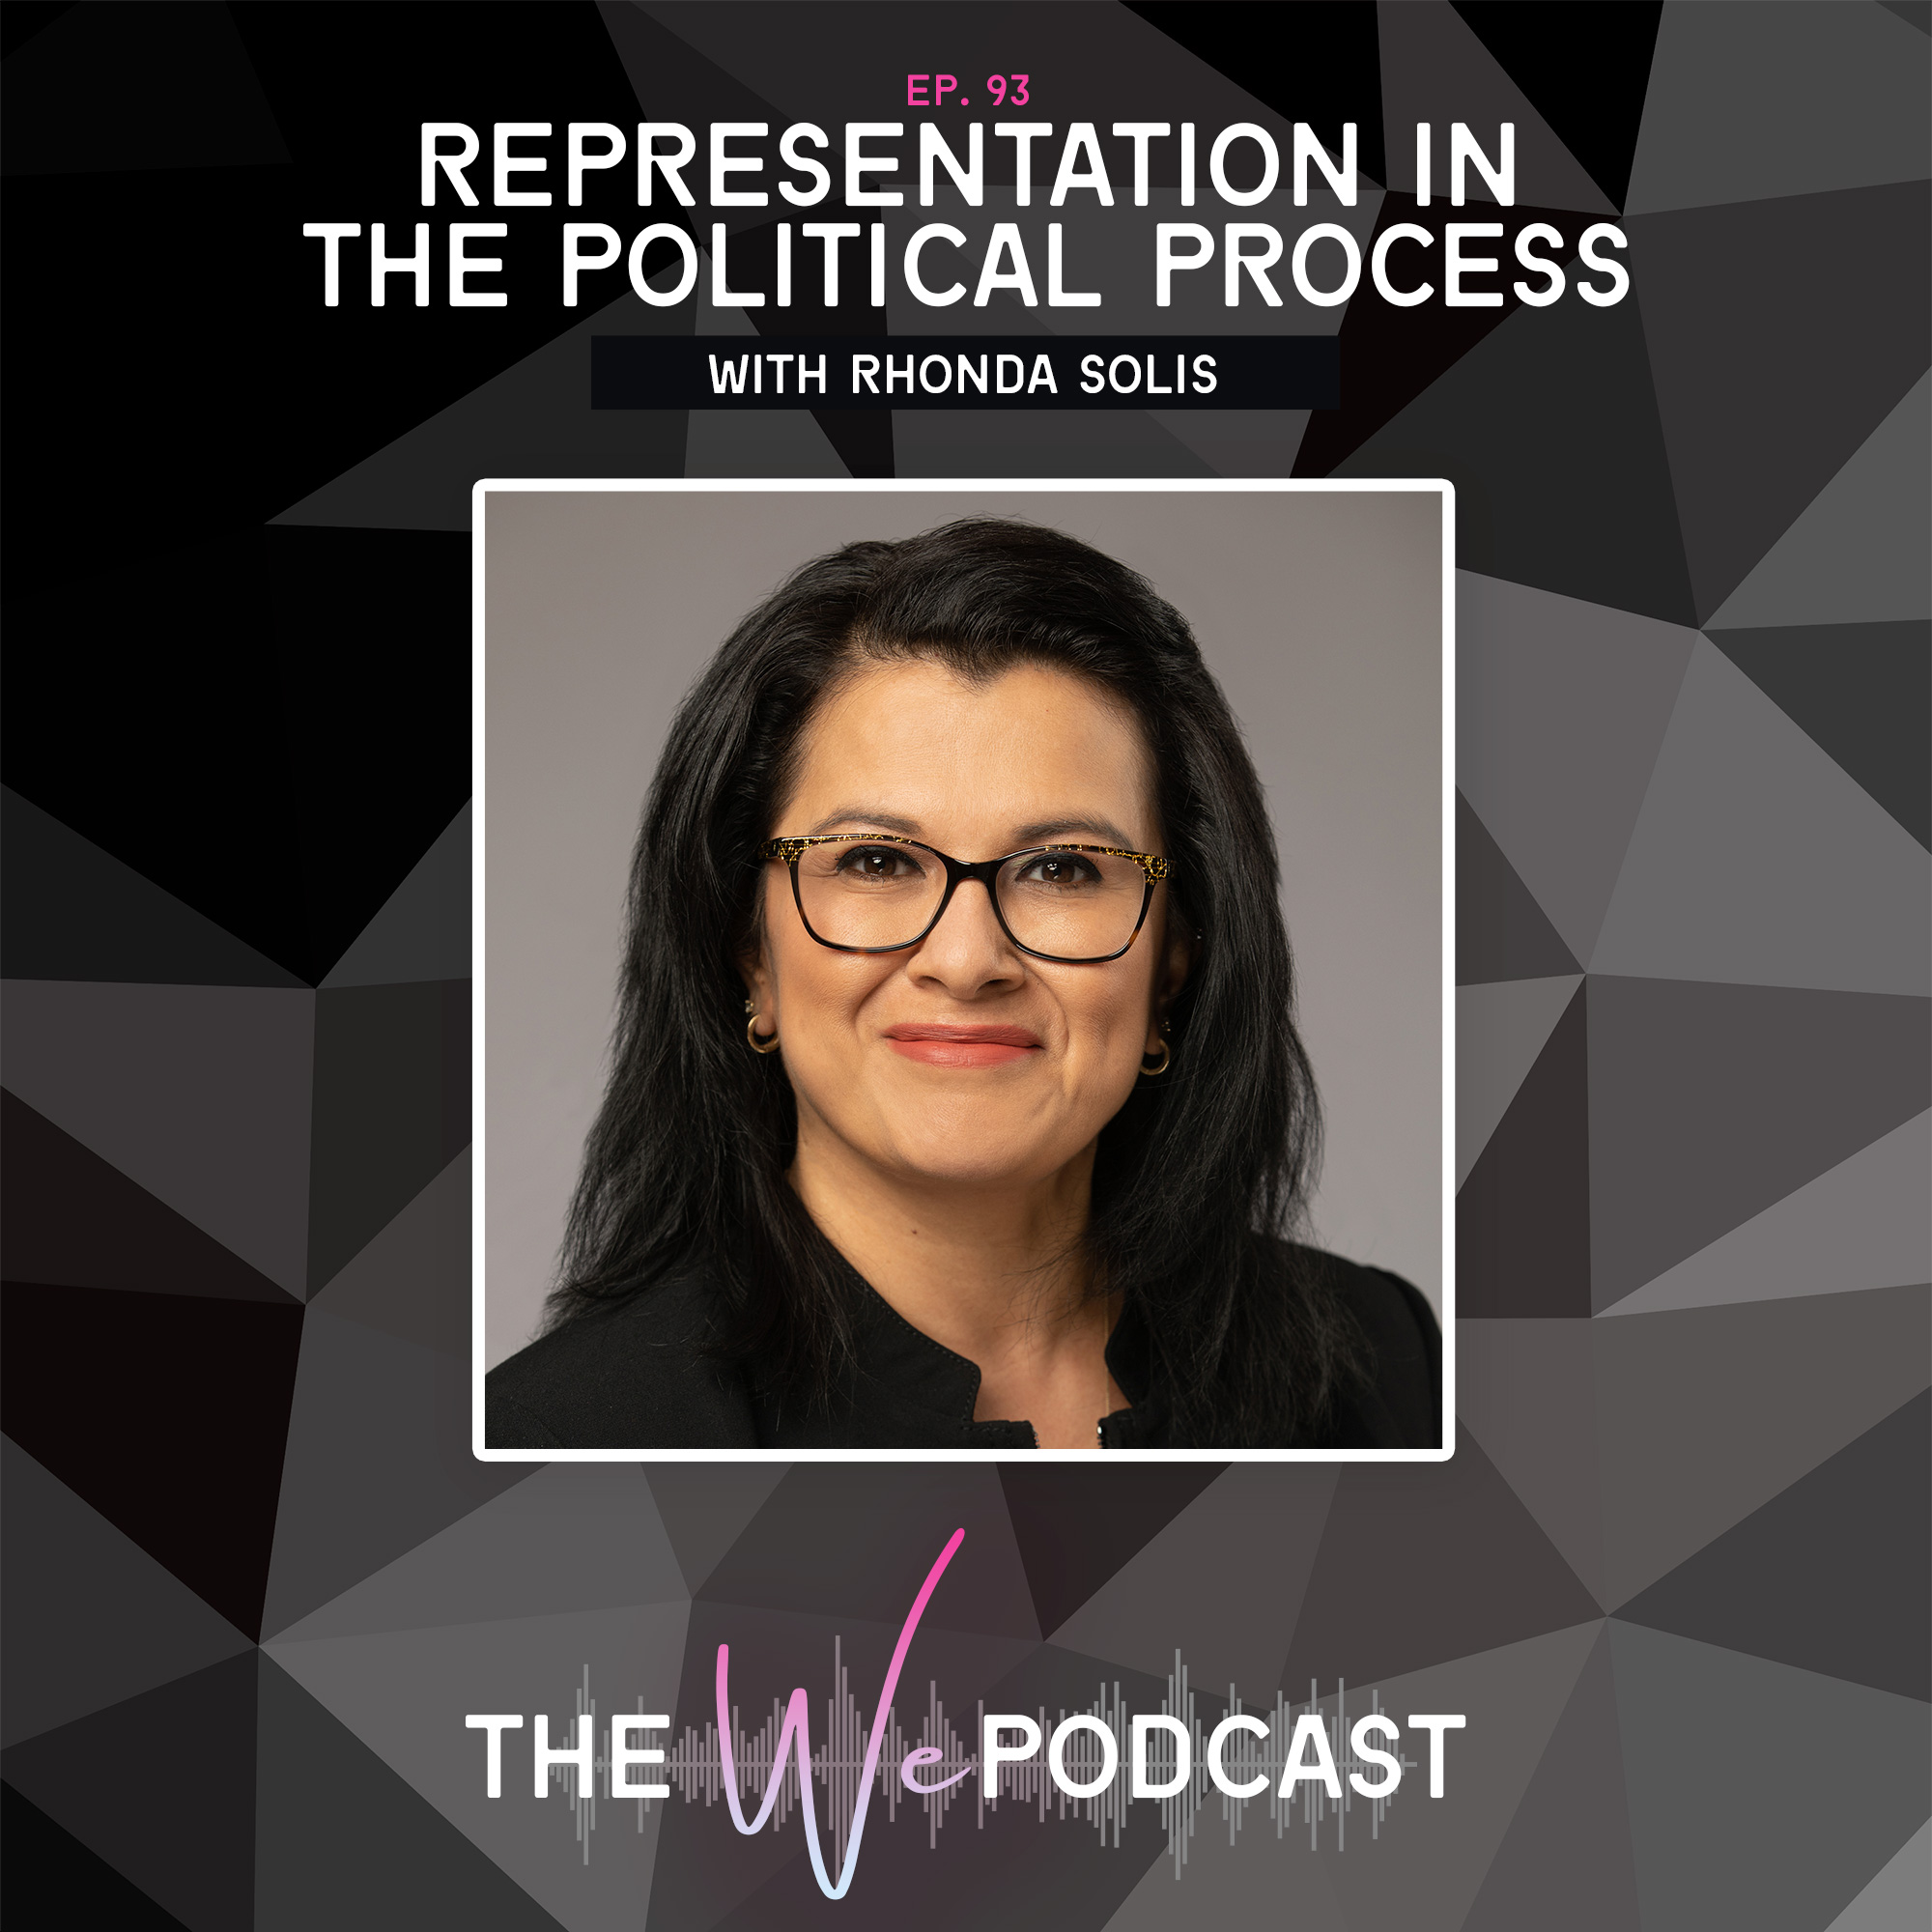 Artwork for podcast The We Podcast with Sarah Monares